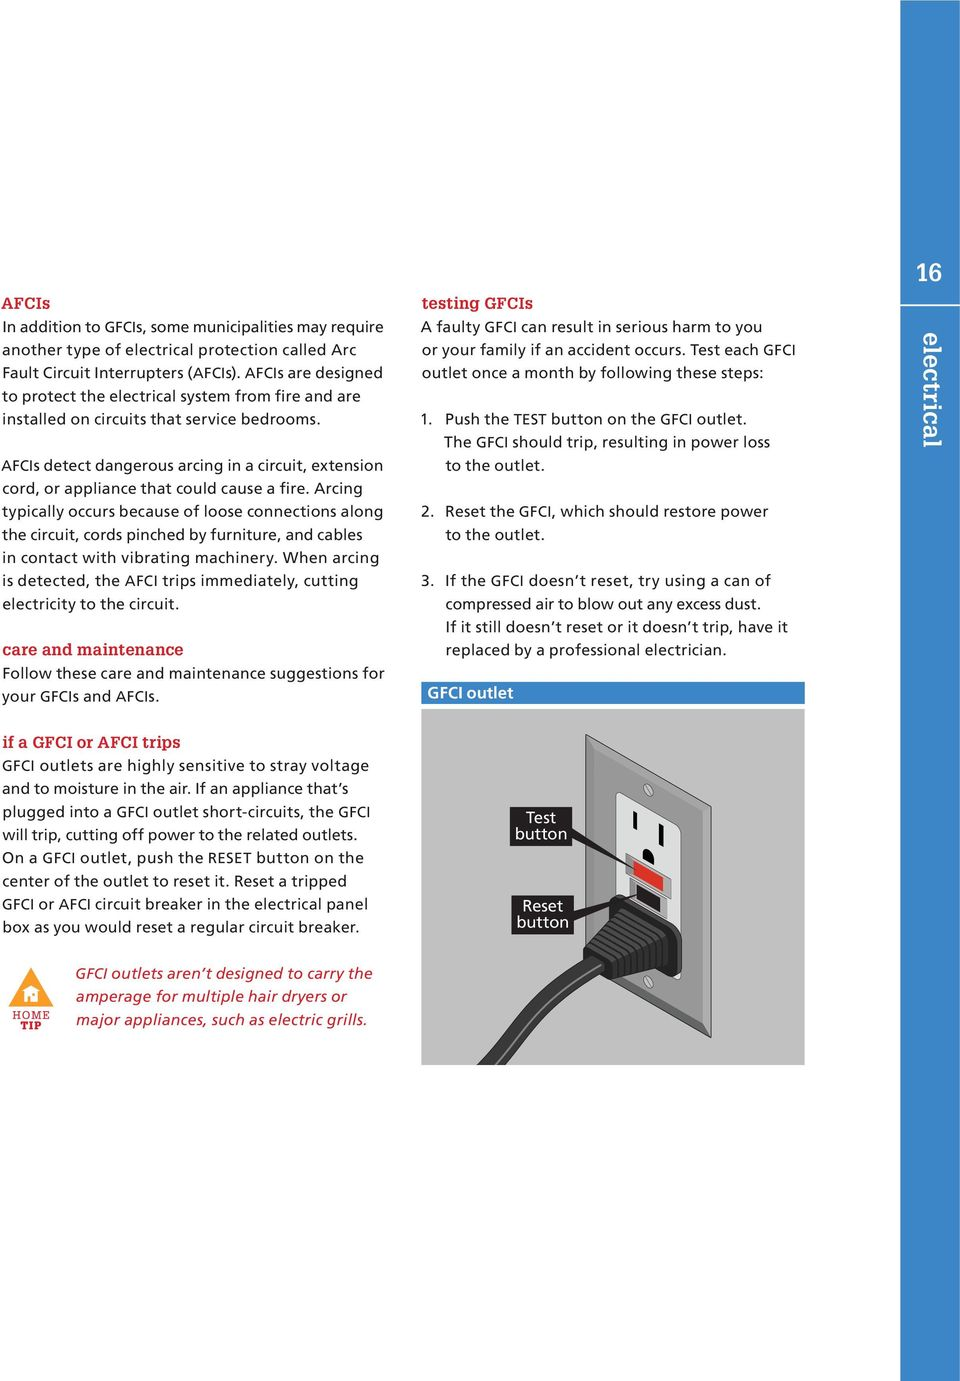 2 Electrical Pultegroup Inc All Rights Reserved Pdf Residential Fires Arcfault Circuit Interrupters Afcis Detect Dangerous Arcing In A Extension Cord Or Appliance That Could Cause